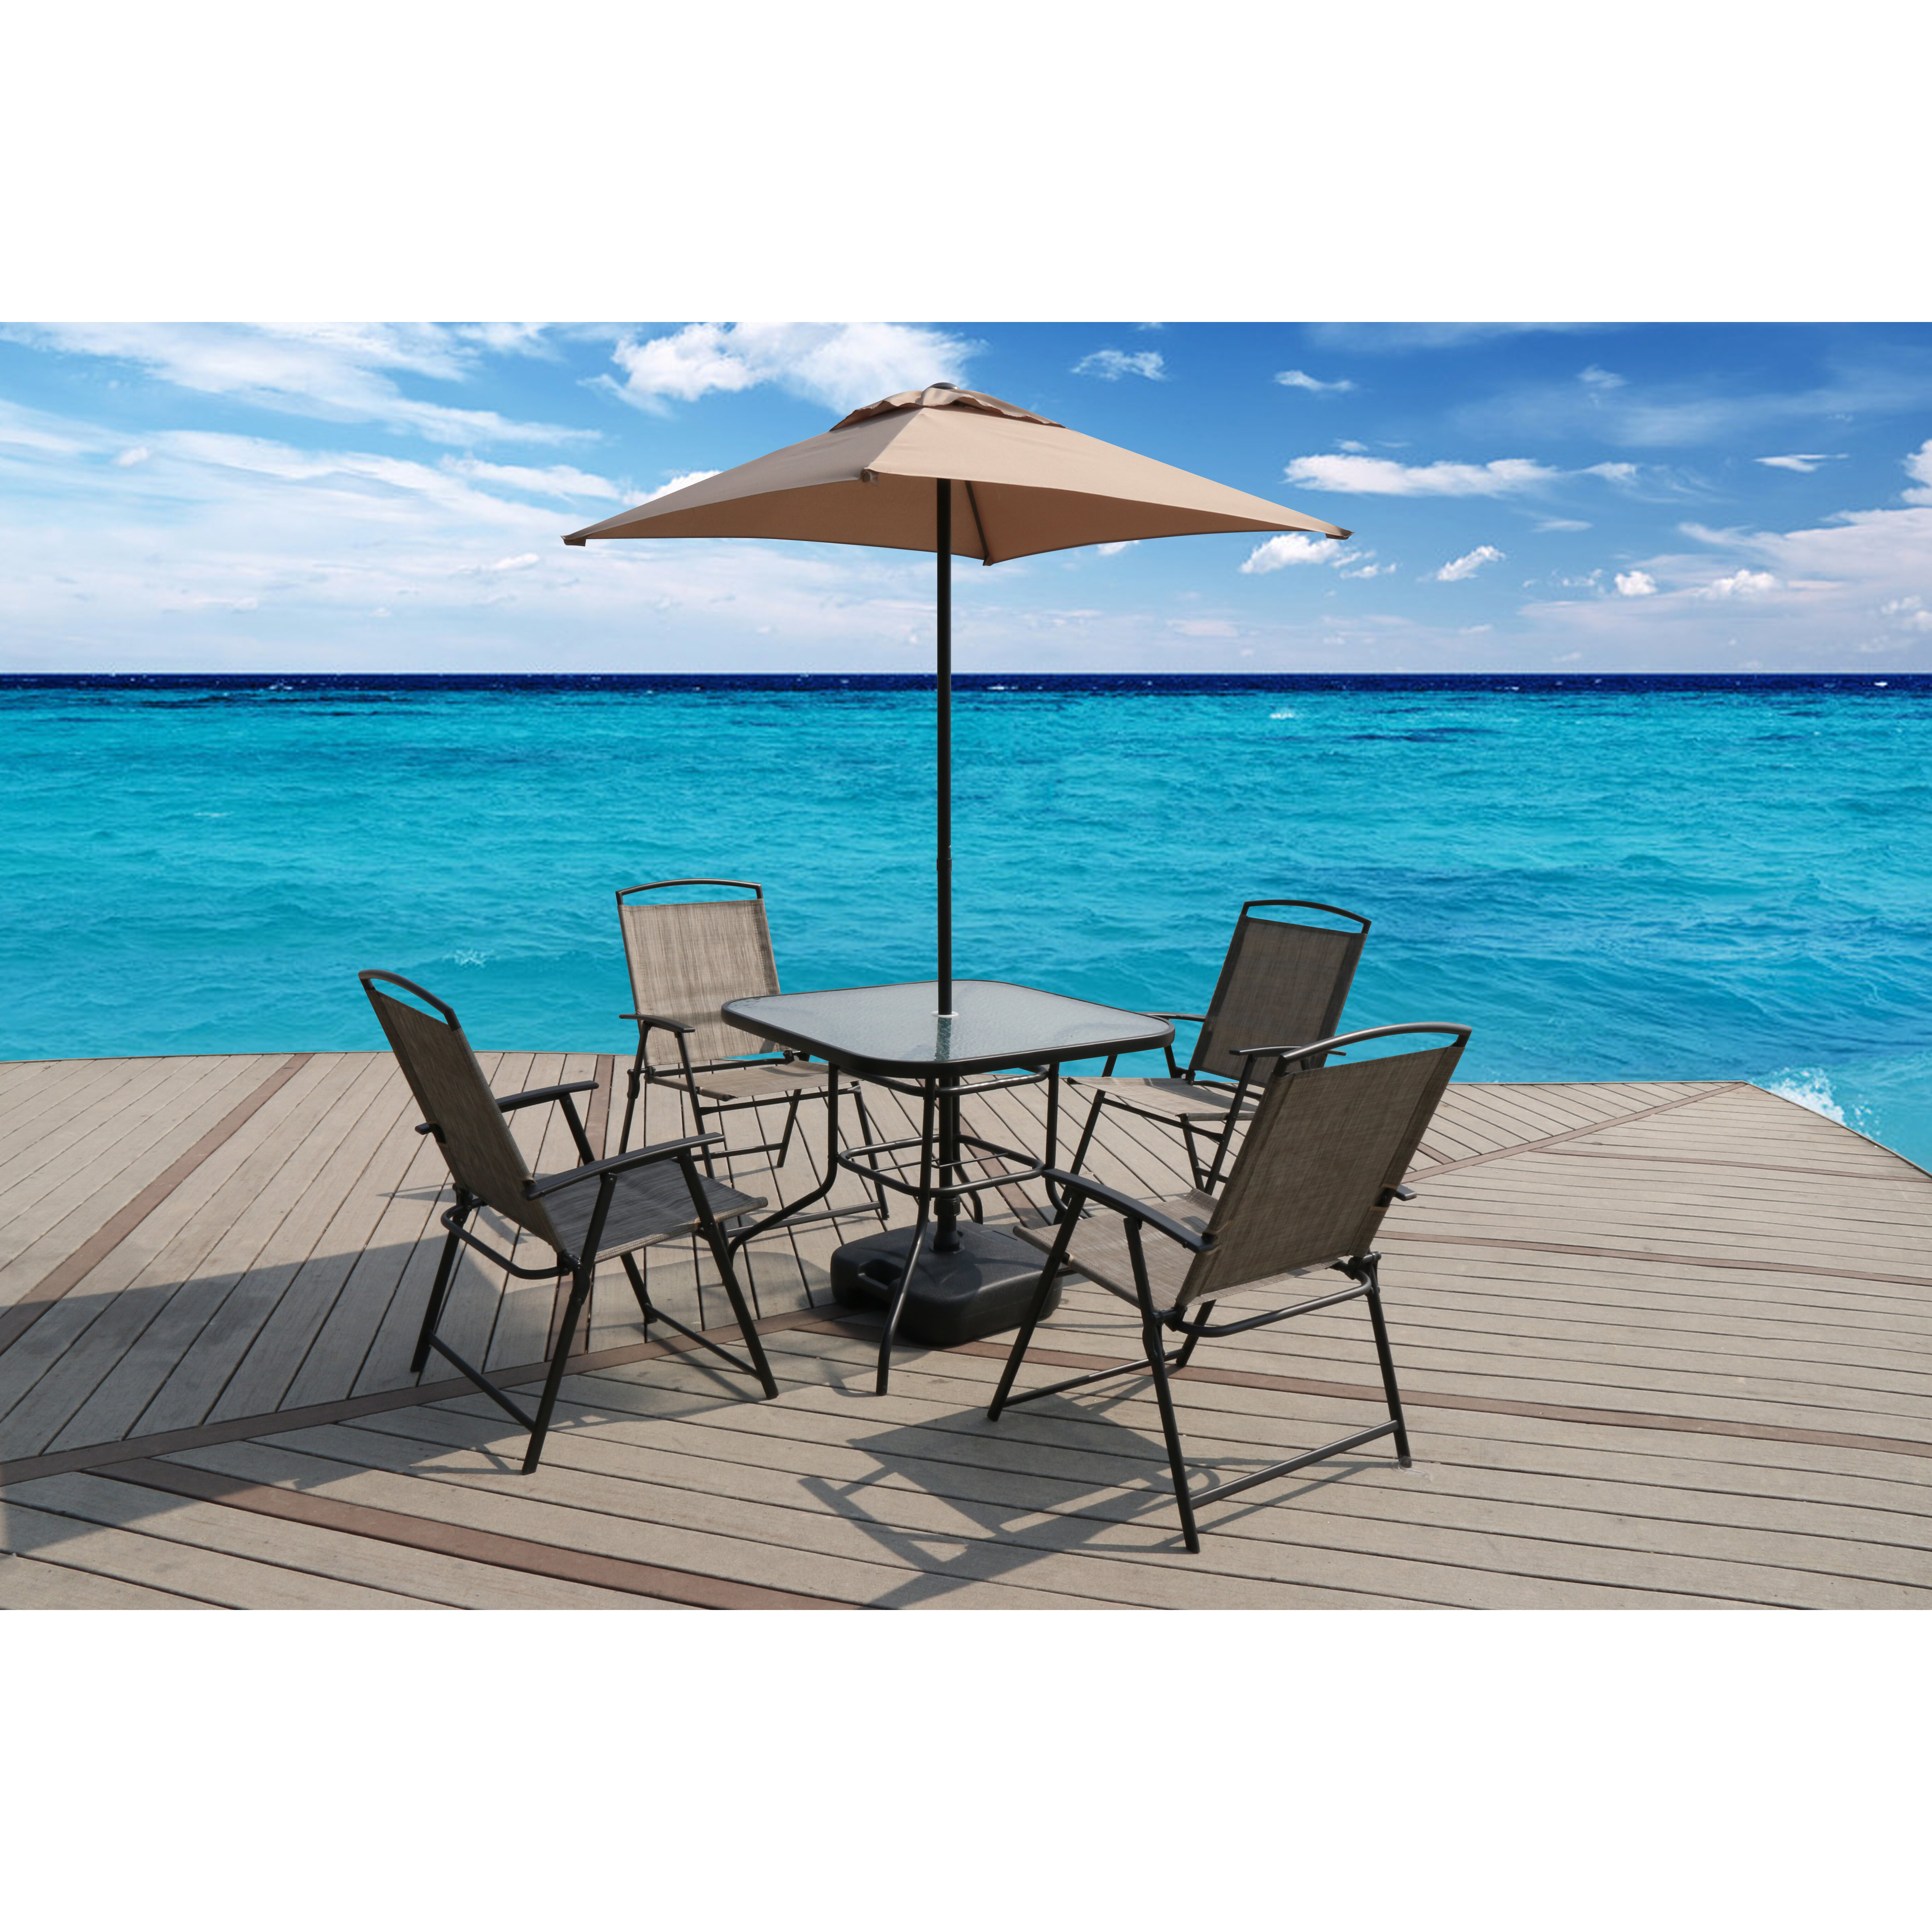 SunTime Outdoor Living Oasis 7 Piece Dining Set & Reviews ... on Suntime Outdoor Living id=25684